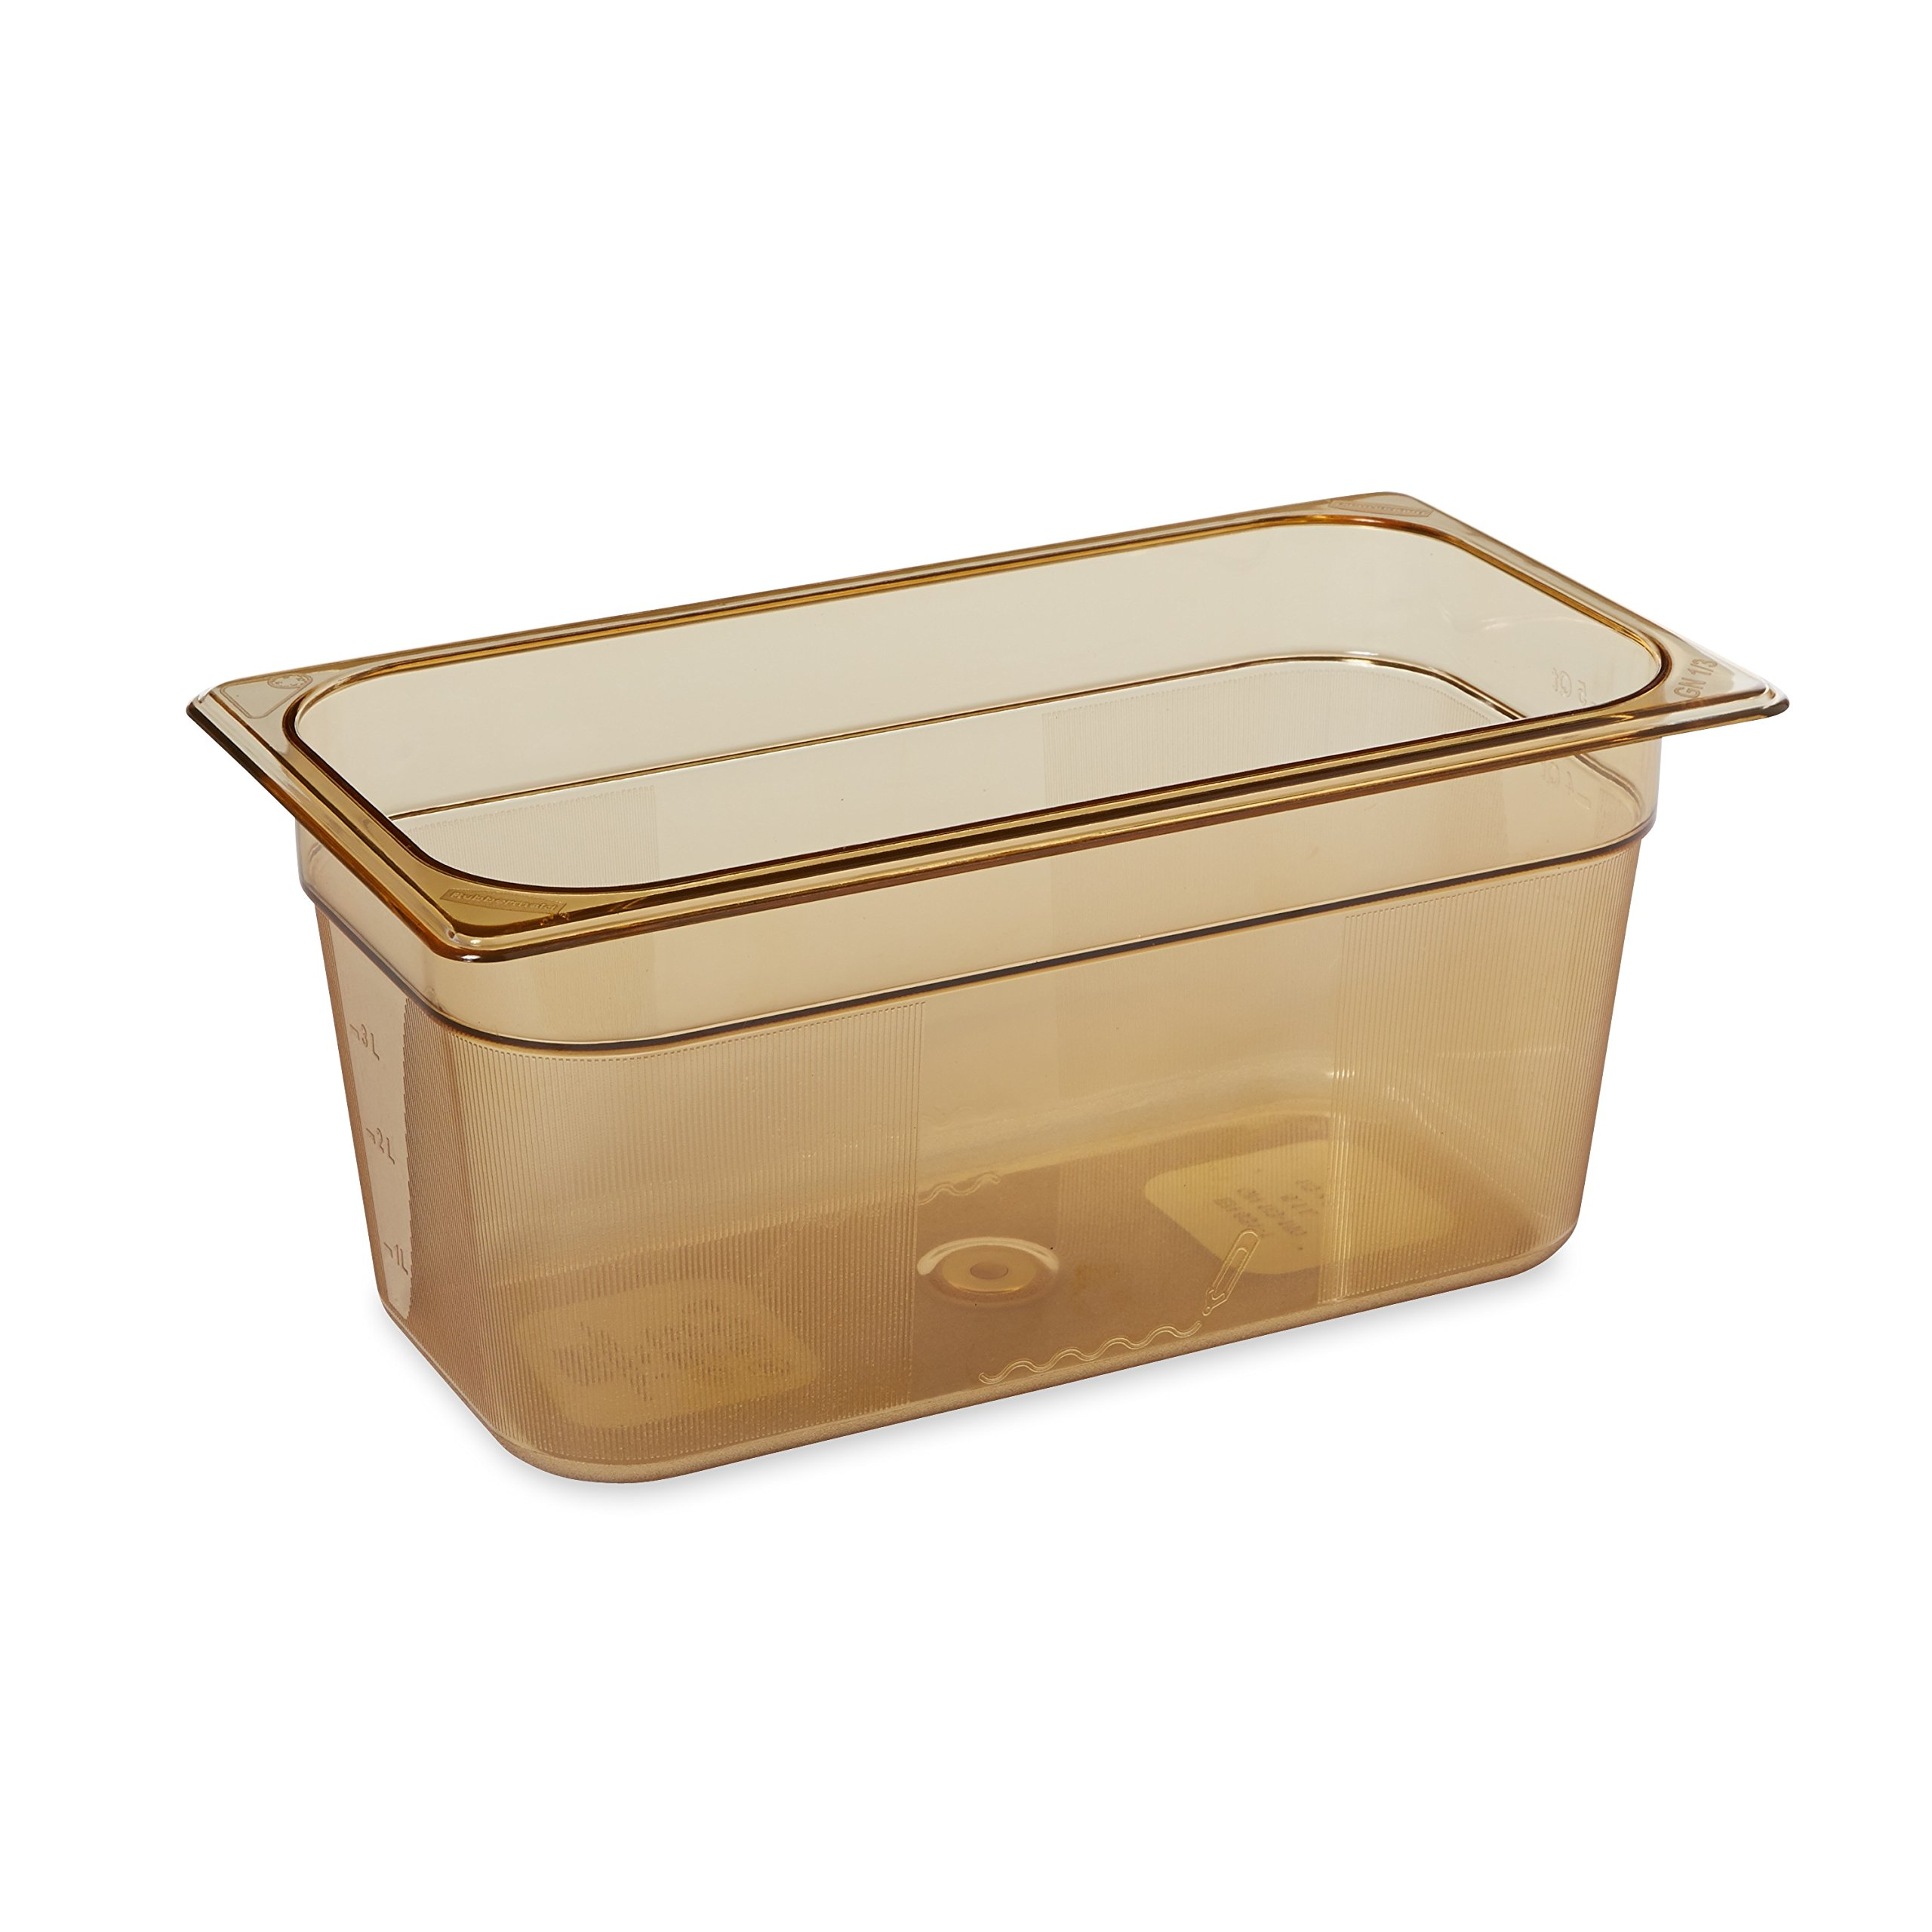 Rubbermaid Commercial Products FG218P00AMBR 1/3 Size 5-3/8-Quart Hot Food Pan, Amber